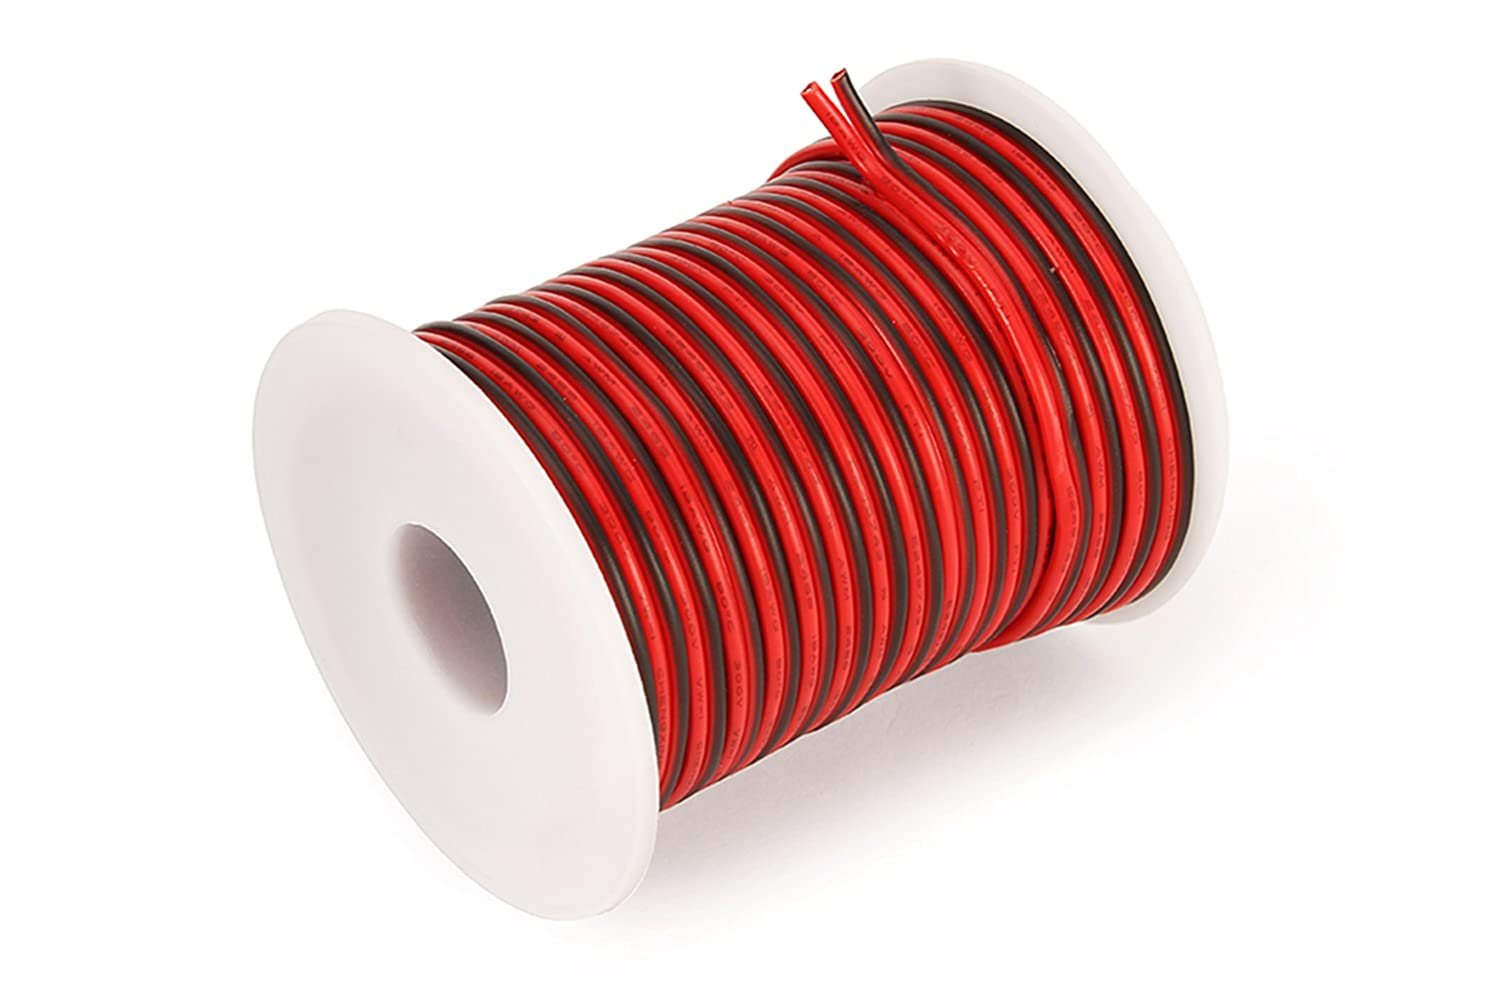 C able 50foot 18 gauge hookup electrical 2 red black wire led strip c able 50foot 18 gauge hookup electrical 2 red black wire led strip extension wire awg copper flexible stranded wire cord welding leads cable conductor for publicscrutiny Choice Image